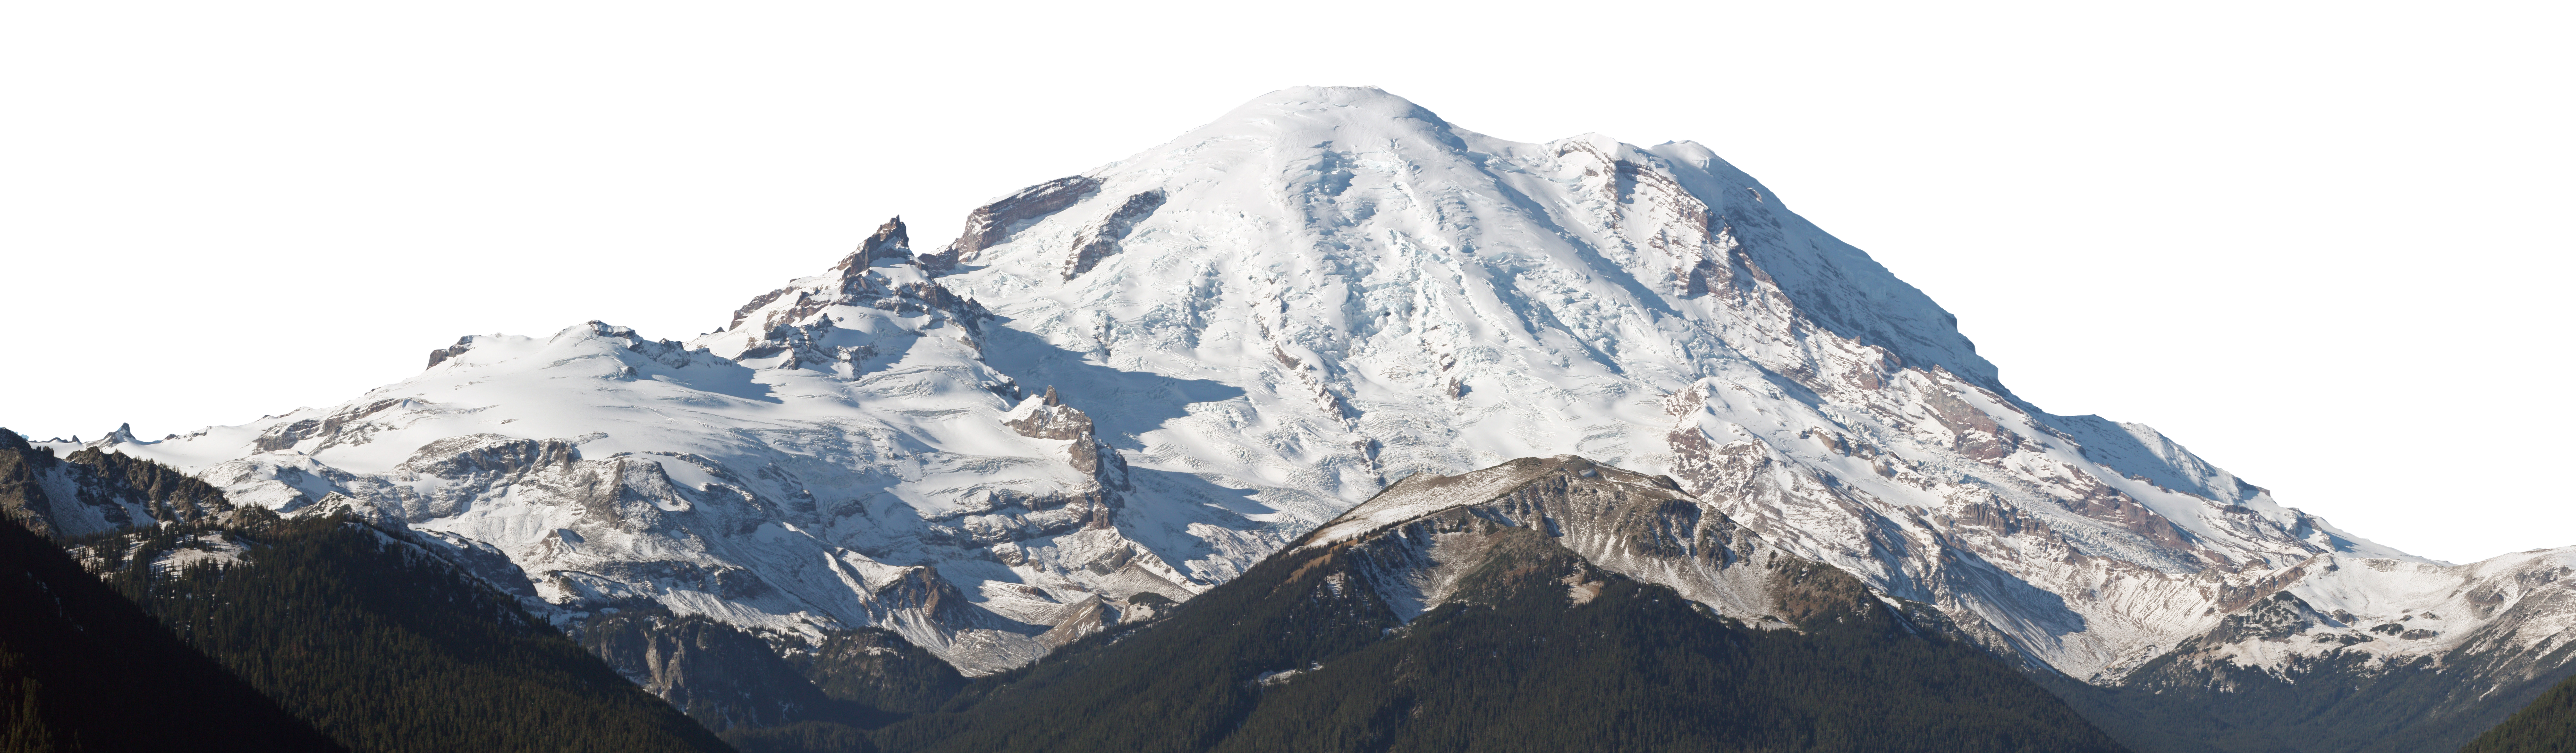 Mountain PNG - 11311